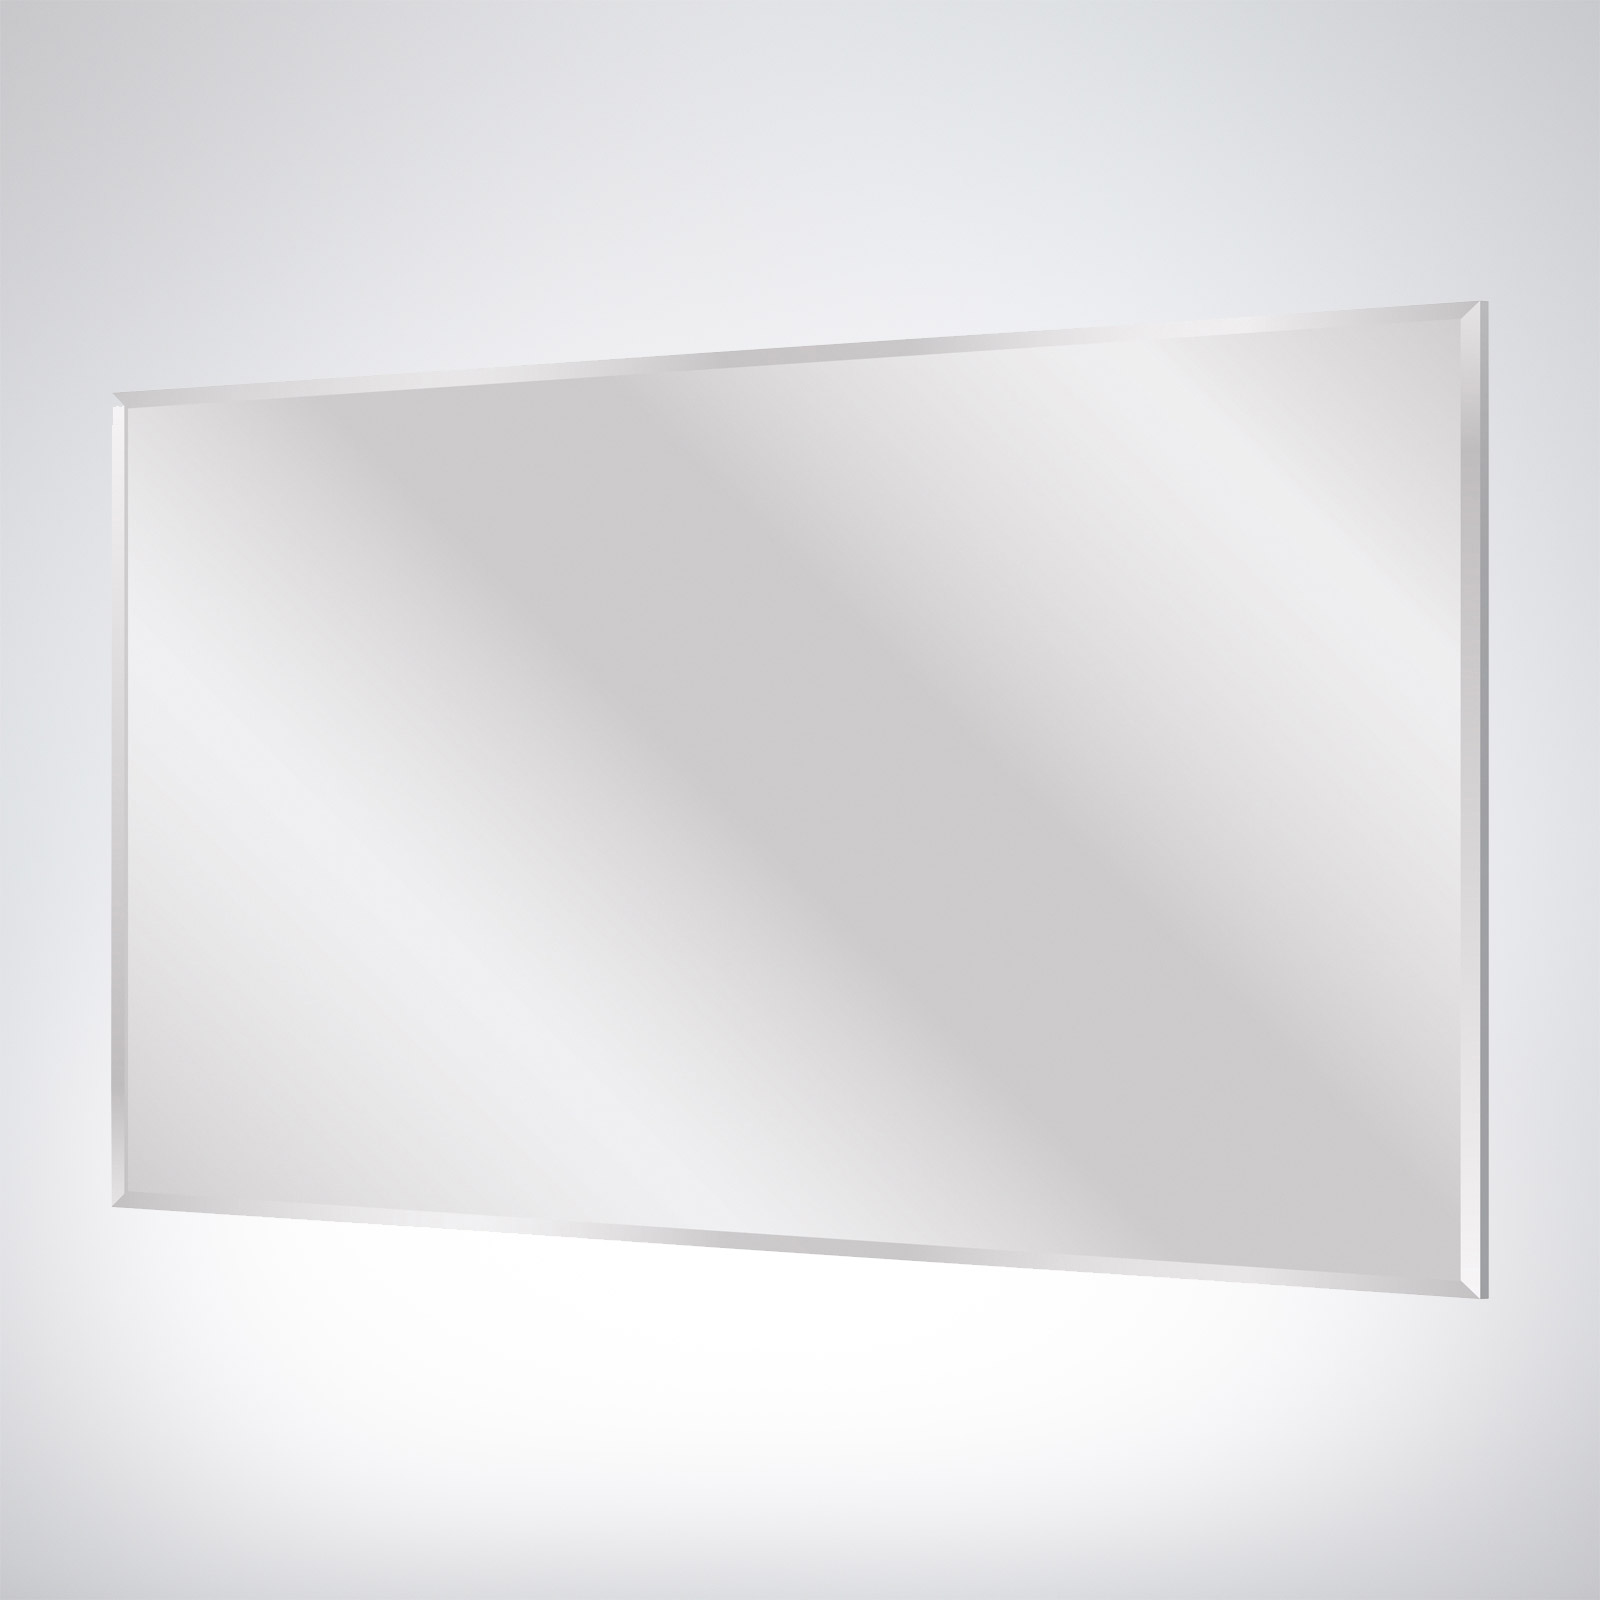 Bevel Edge Mirror 600x900x5mm